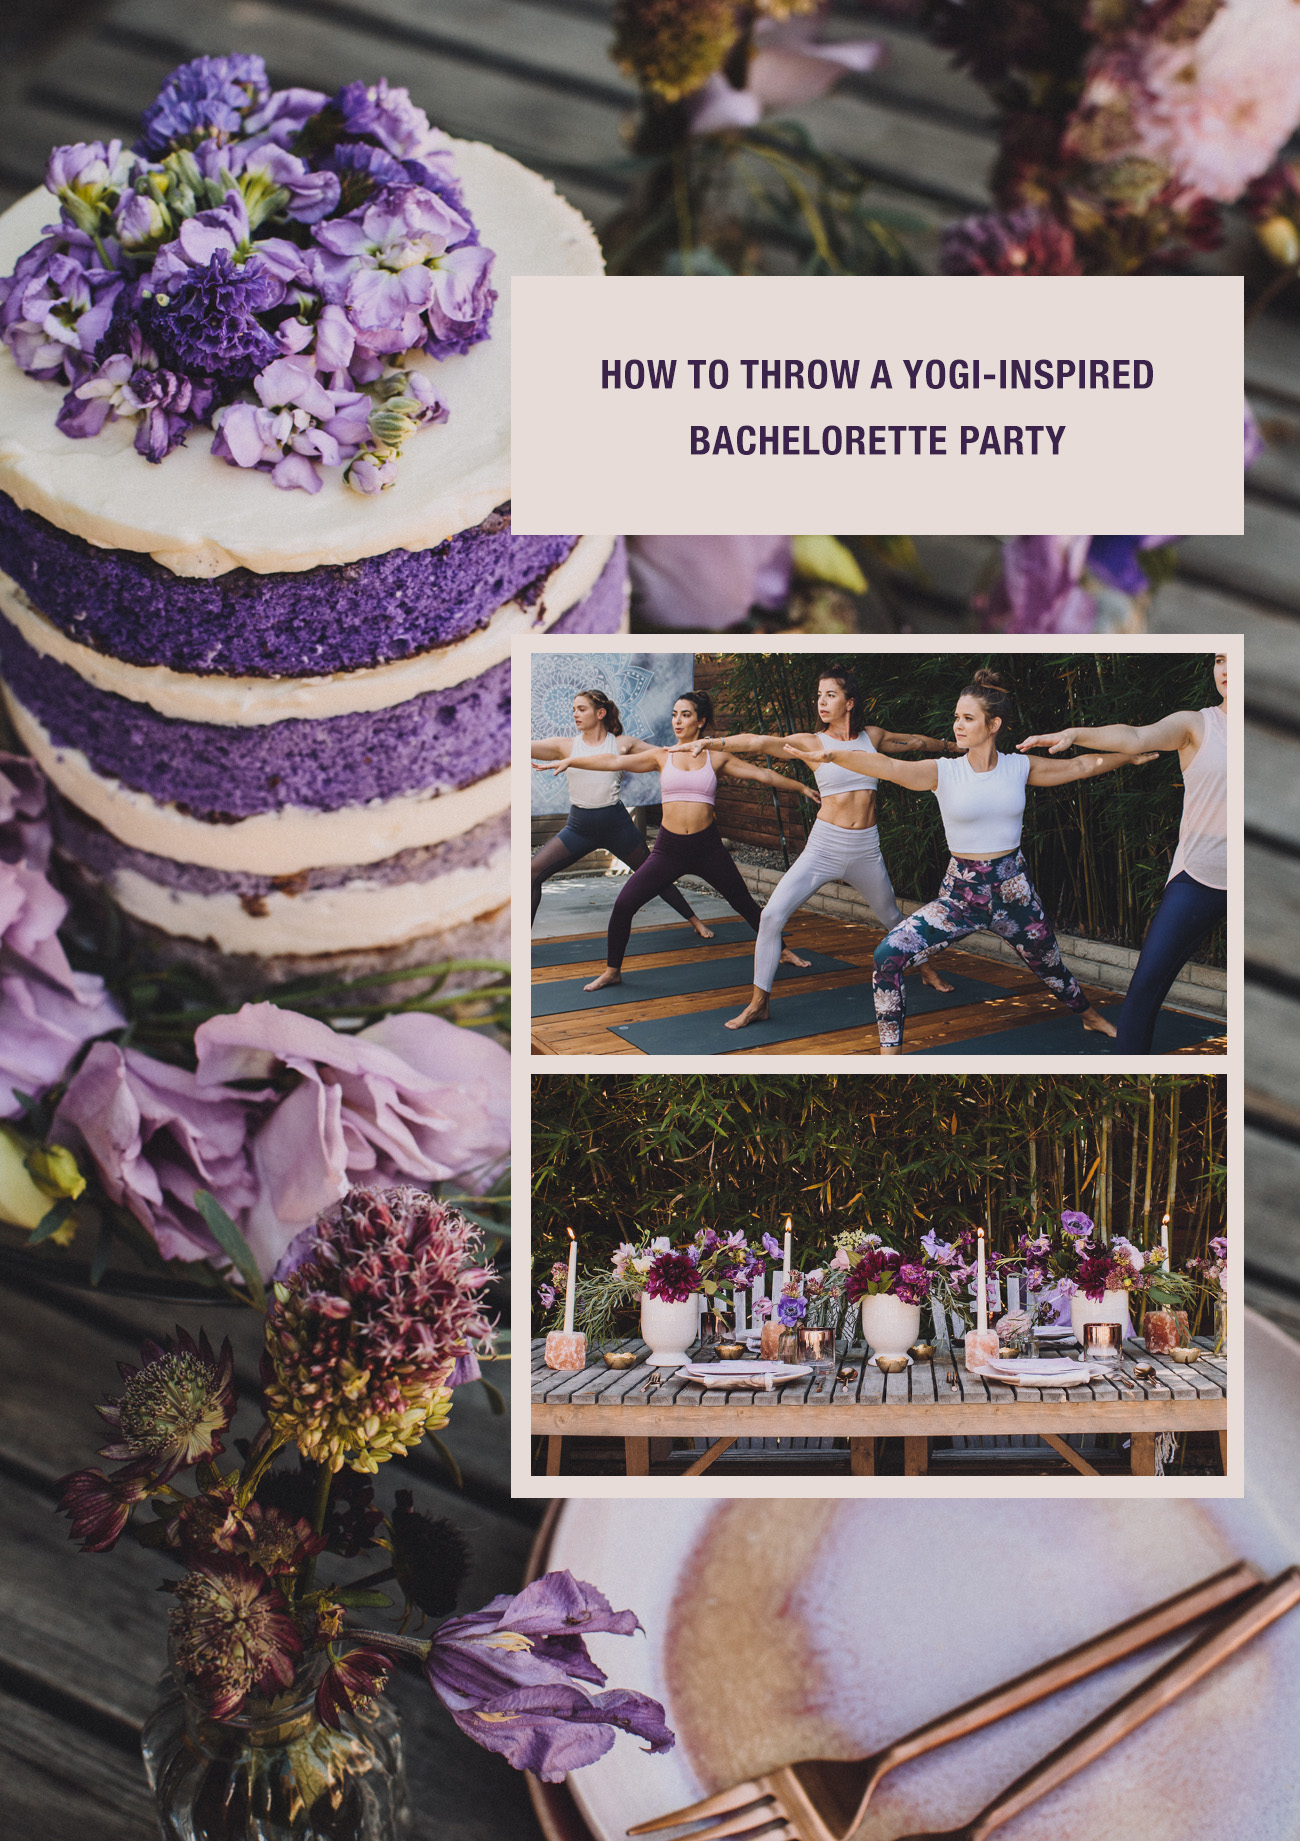 Om in Love! Inspiration for a Wellness Retreat + Yogi-Inspired Bachelorette Party